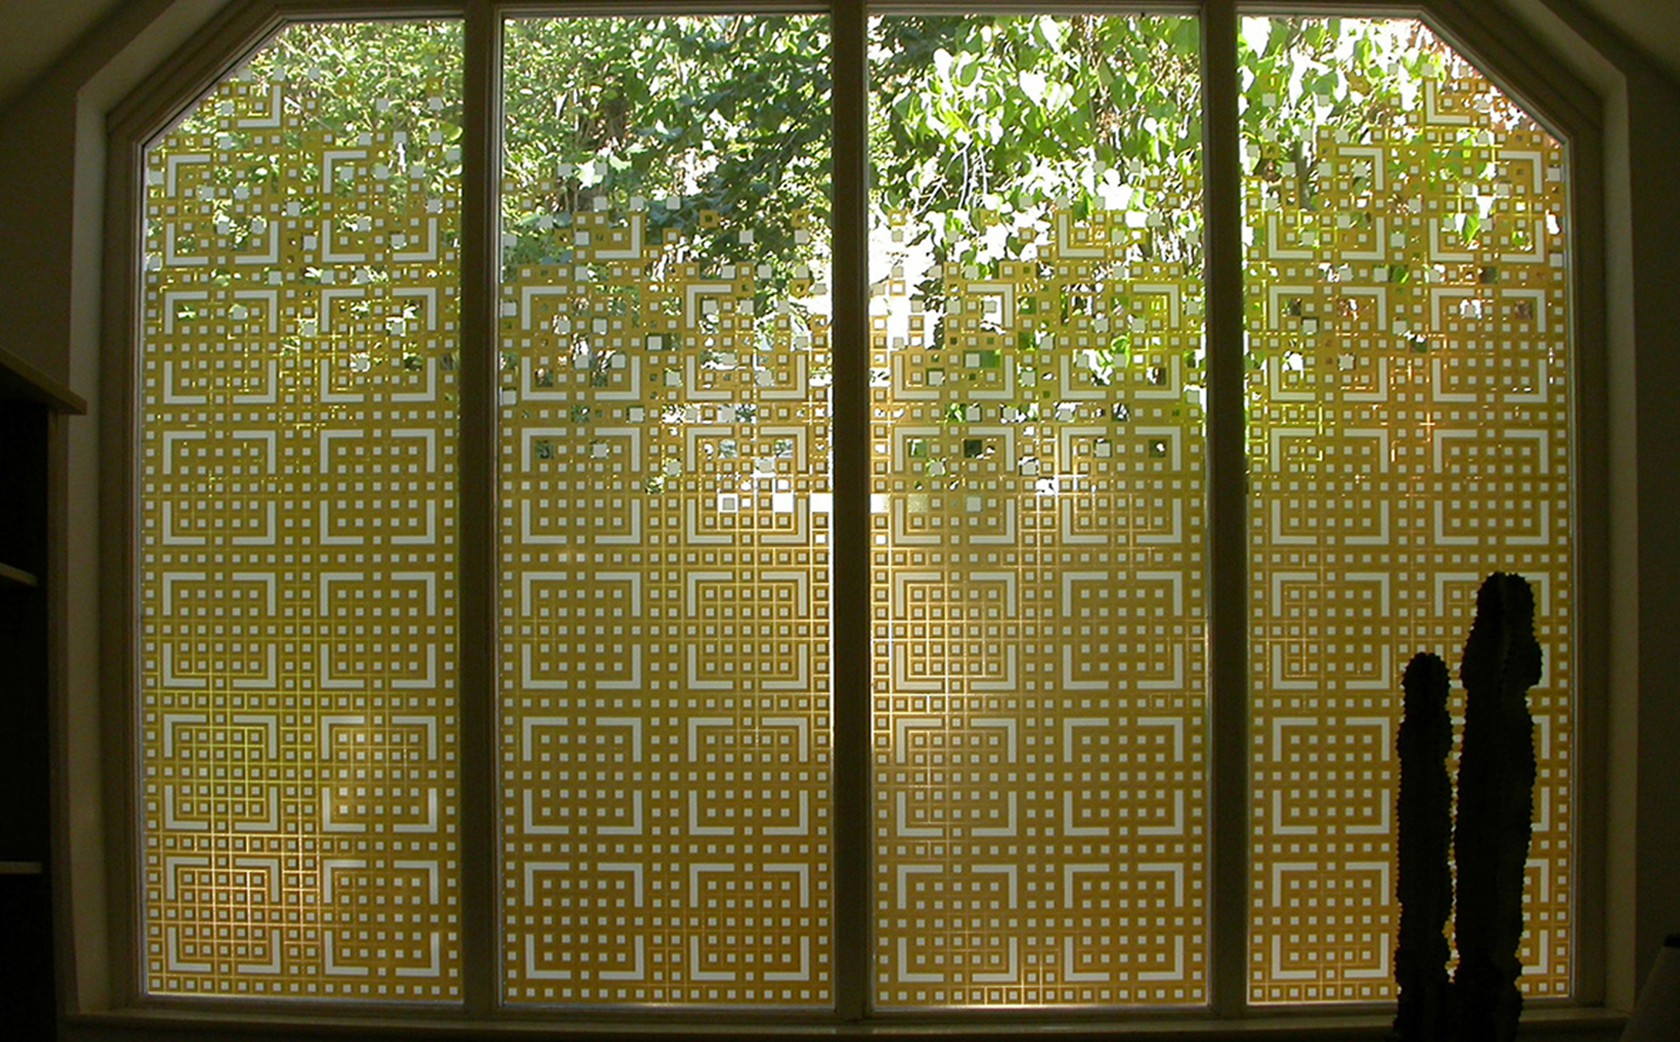 'Chinese Fretwork' inspired these designer glass screens